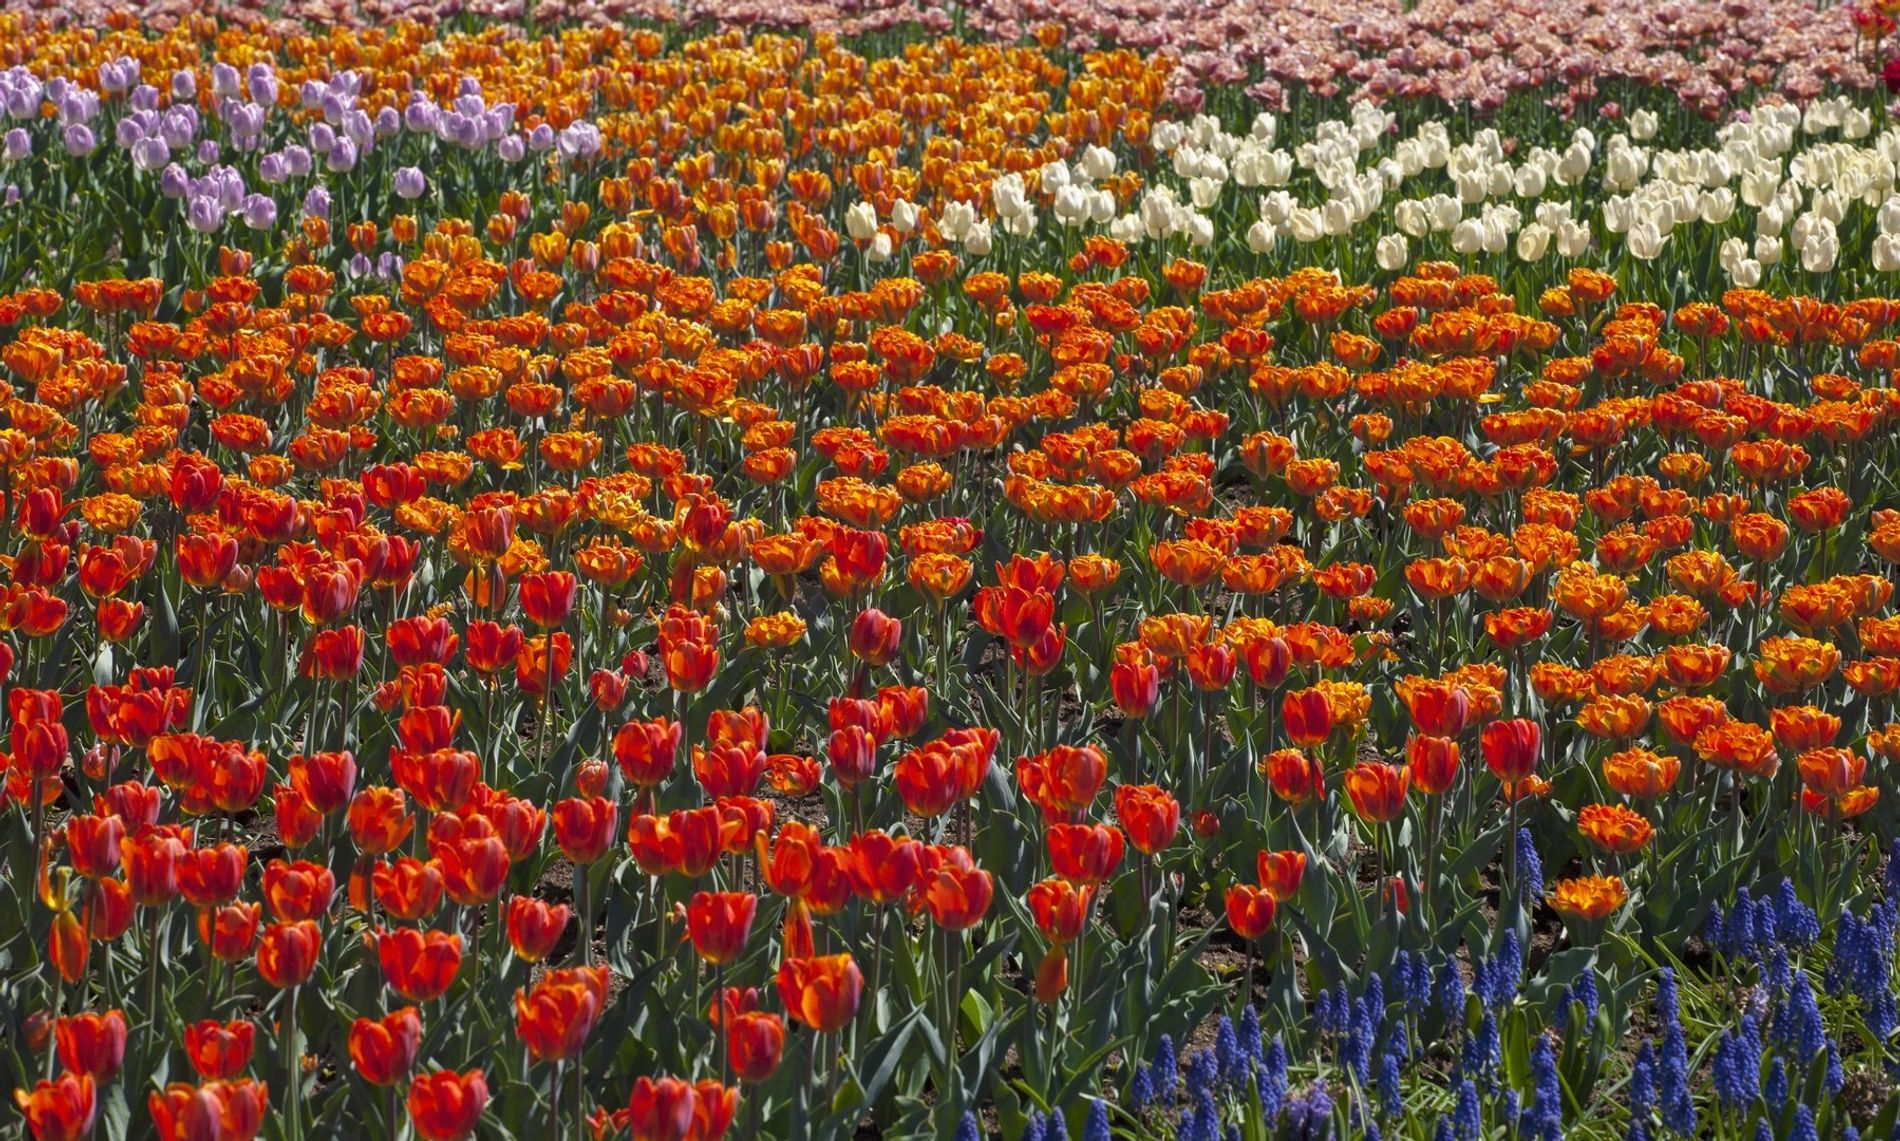 With close to a million tulip bulbs planted for the Canadian Tulip Festival in Ottawa, Ontario, ...